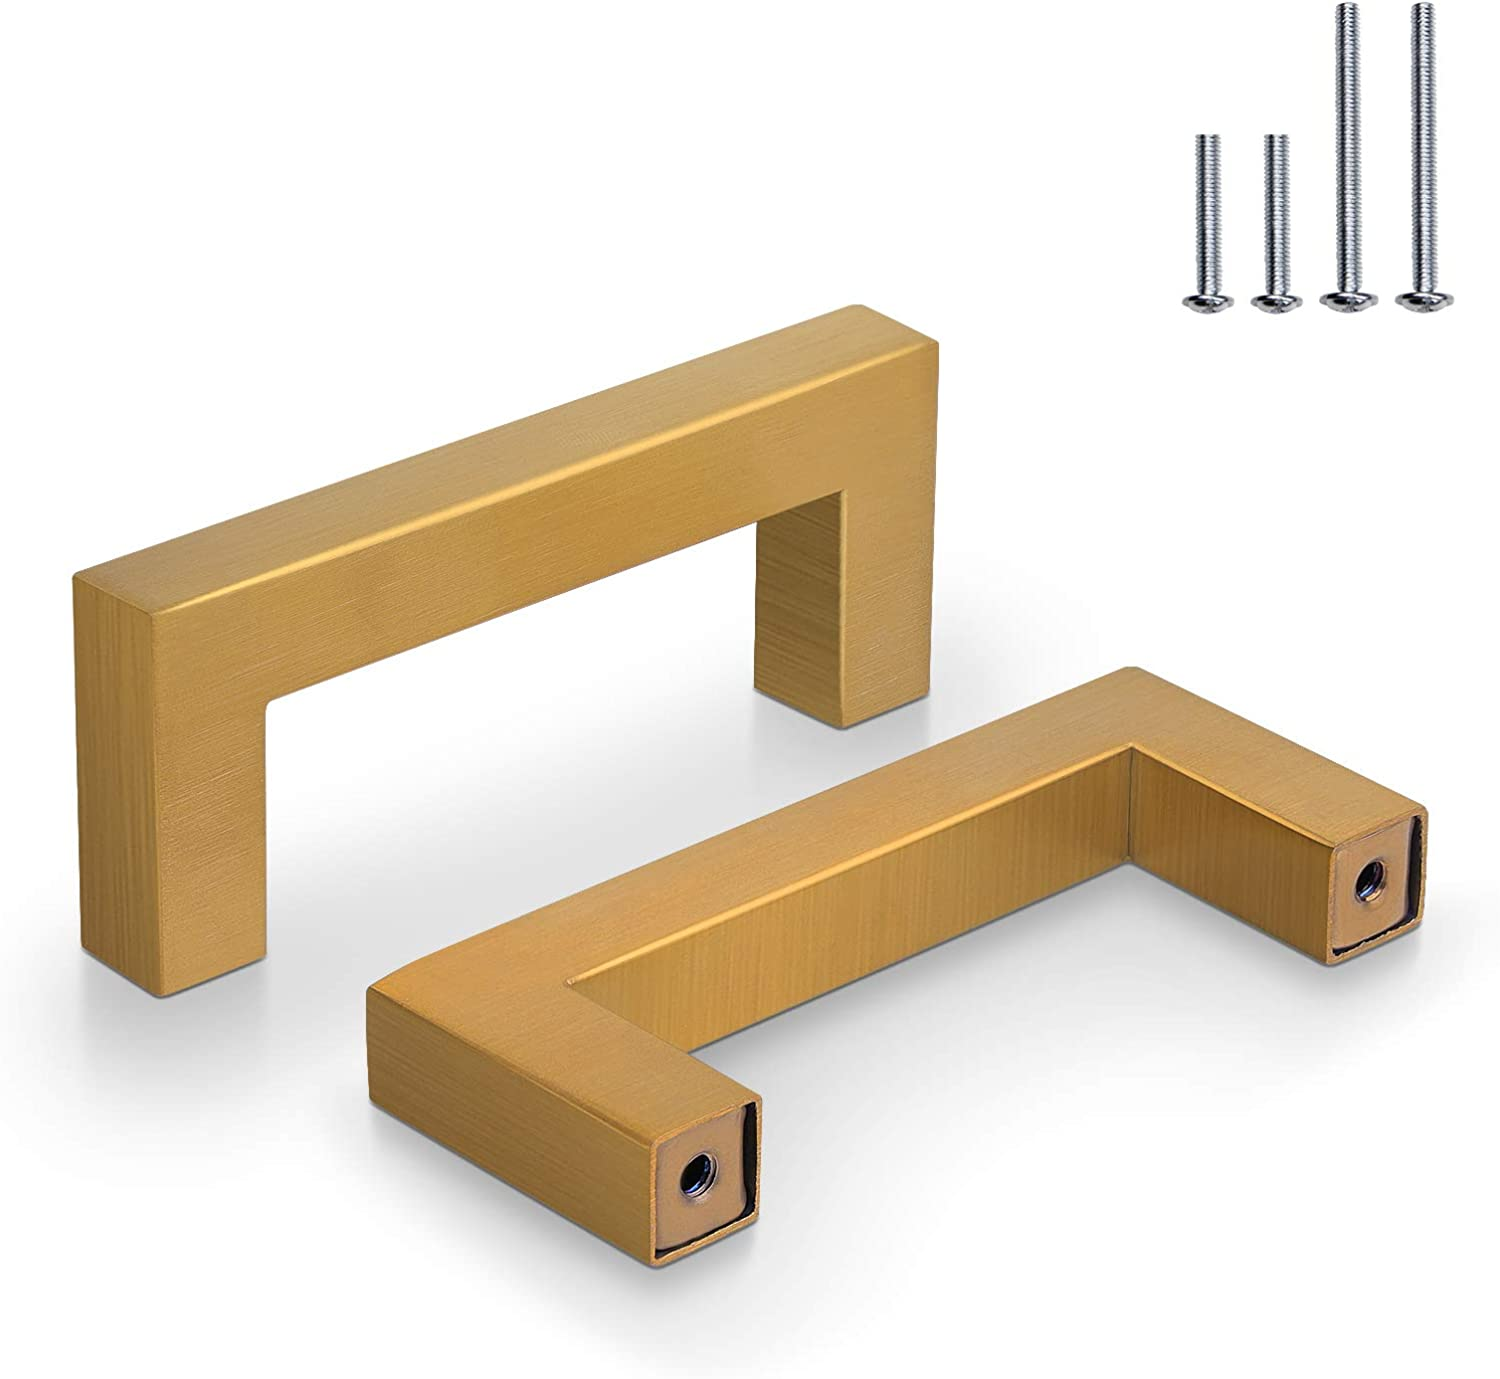 20 Pack Probrico Hole Centers 3 inch B Gold New Shipping Free 76mm Square Attention brand Corner